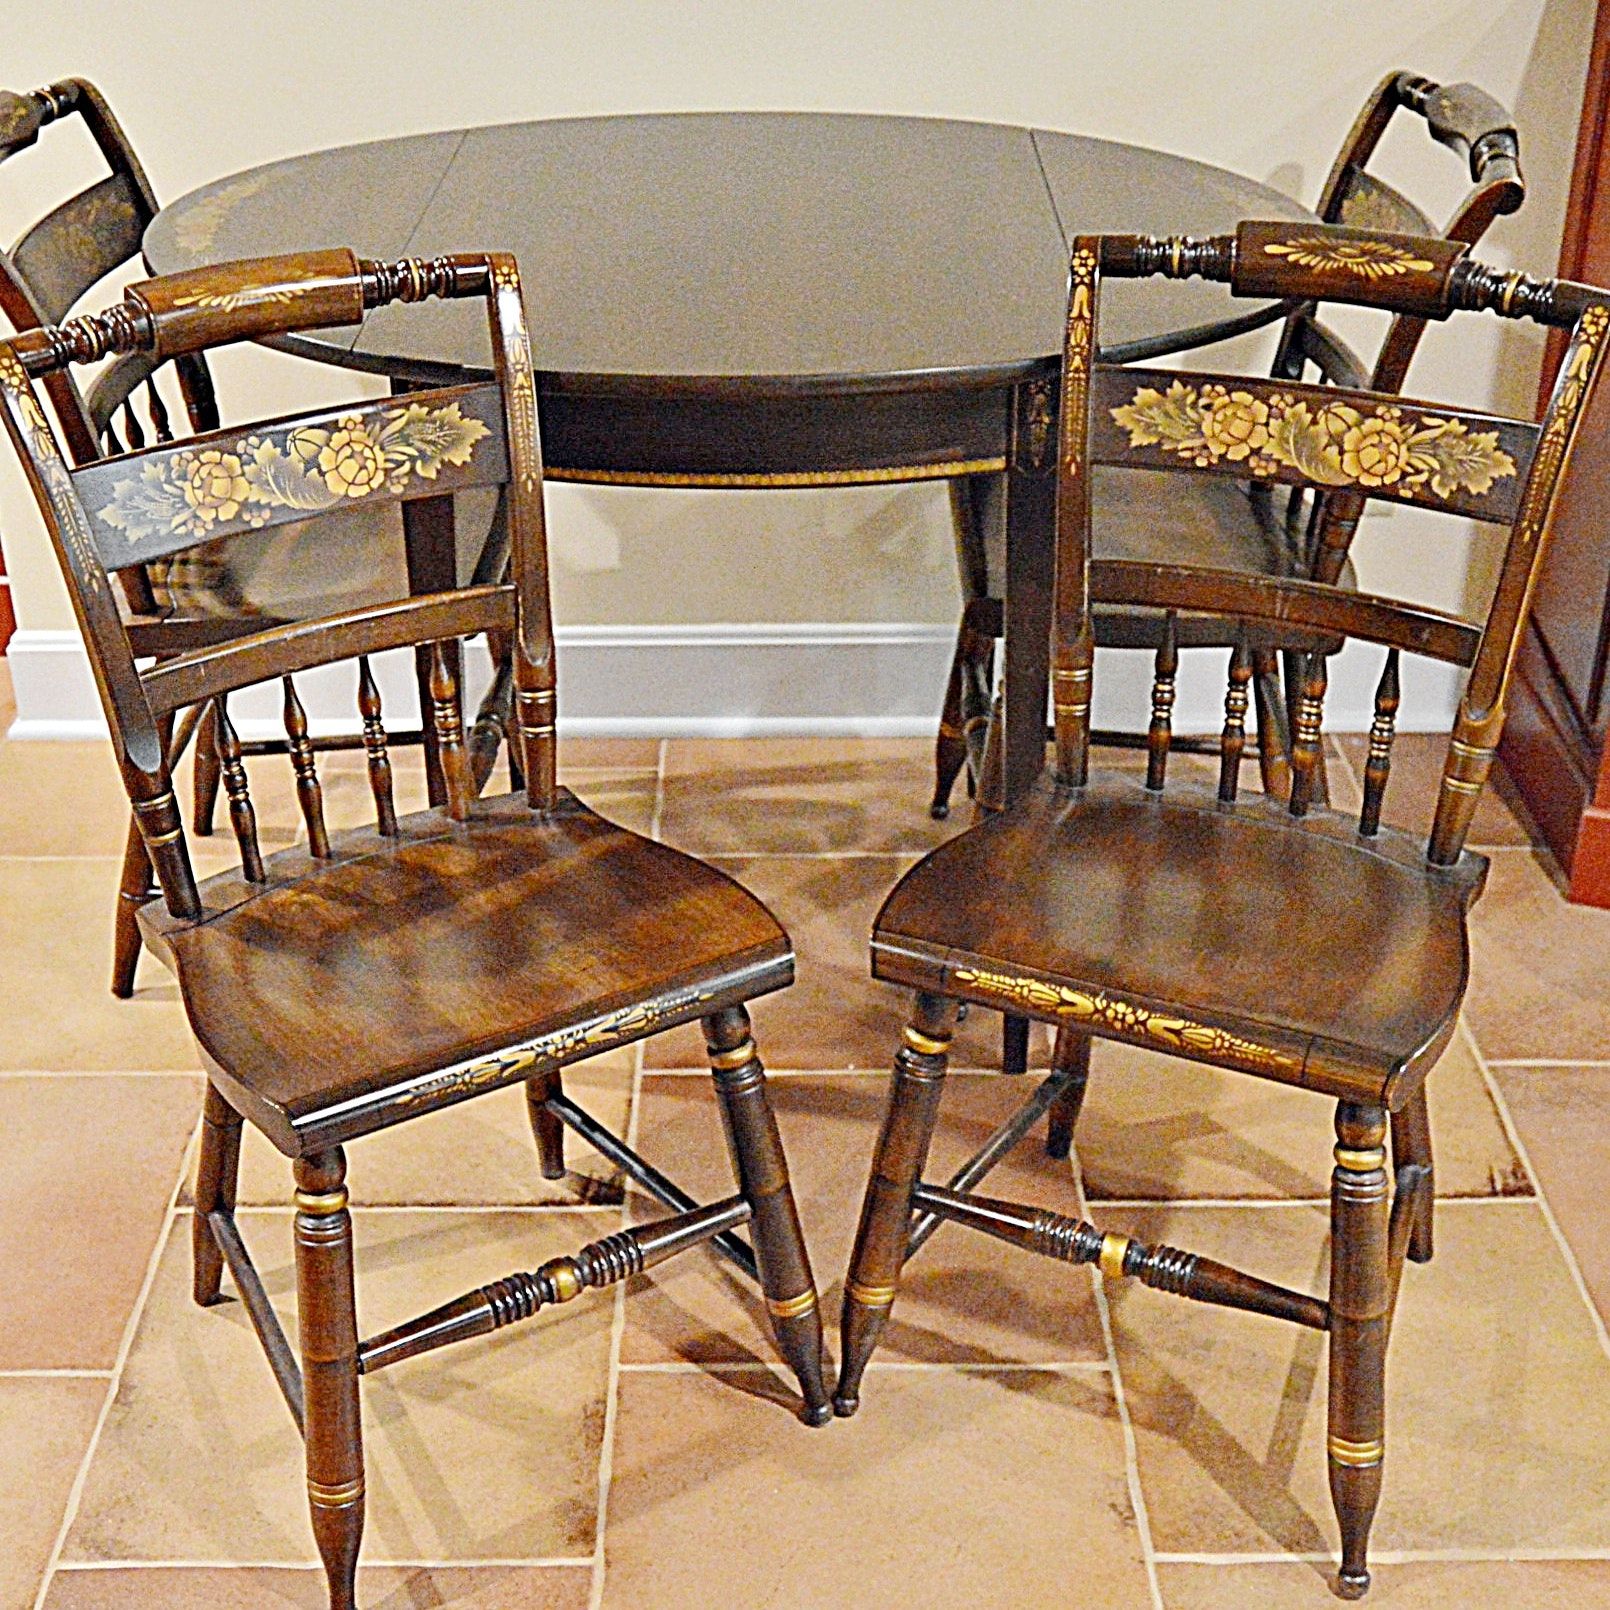 Stencil-Decorated Drop-Leaf Table and Four Side Chairs by L. Hitchcock